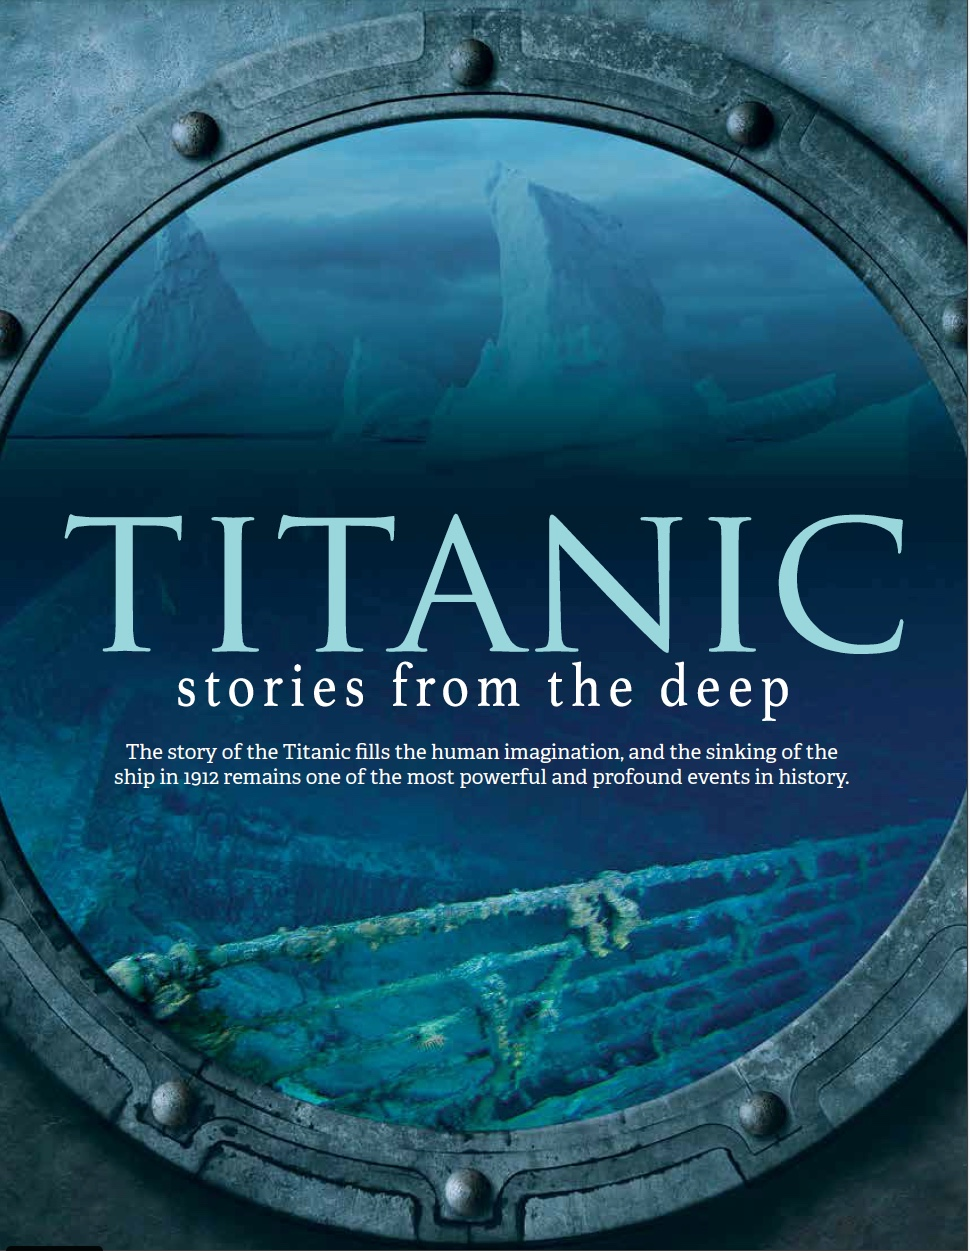 Titanic-Stories-from-the-Deep.jpg